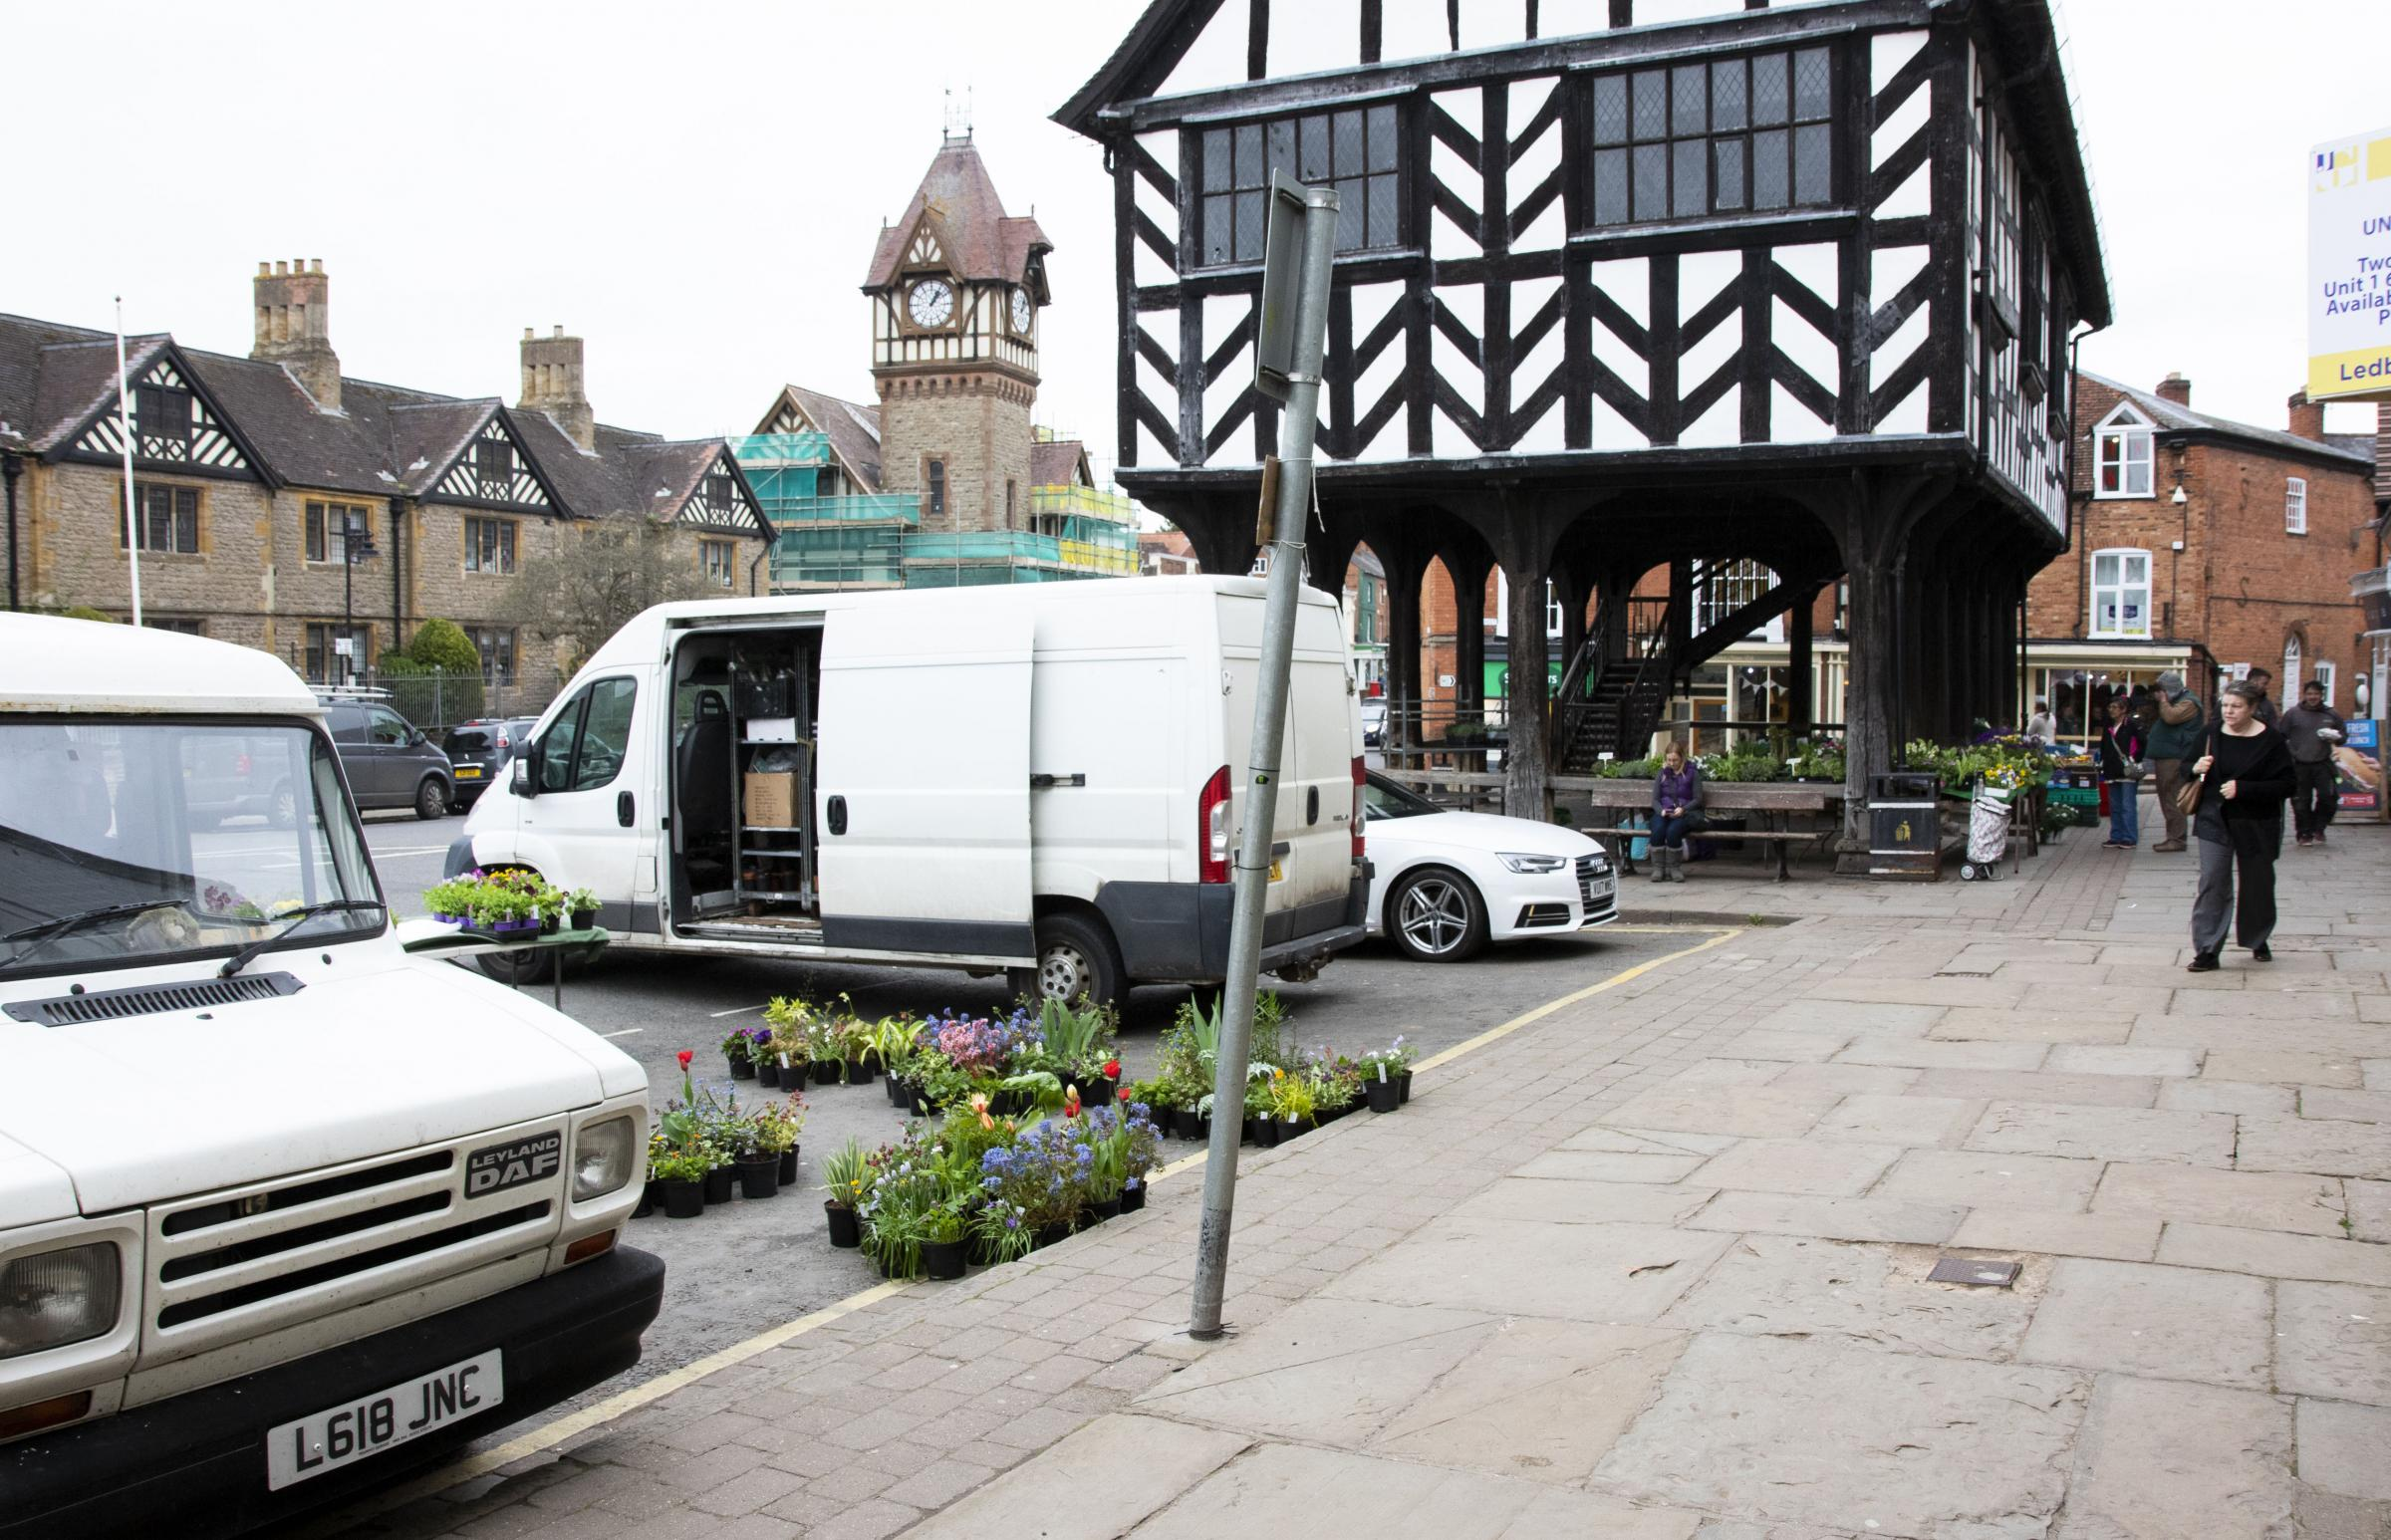 CONCERNS: There are sometimes only 2-3 stalls on a Tuesday market in Ledbury. This week was slightly better.